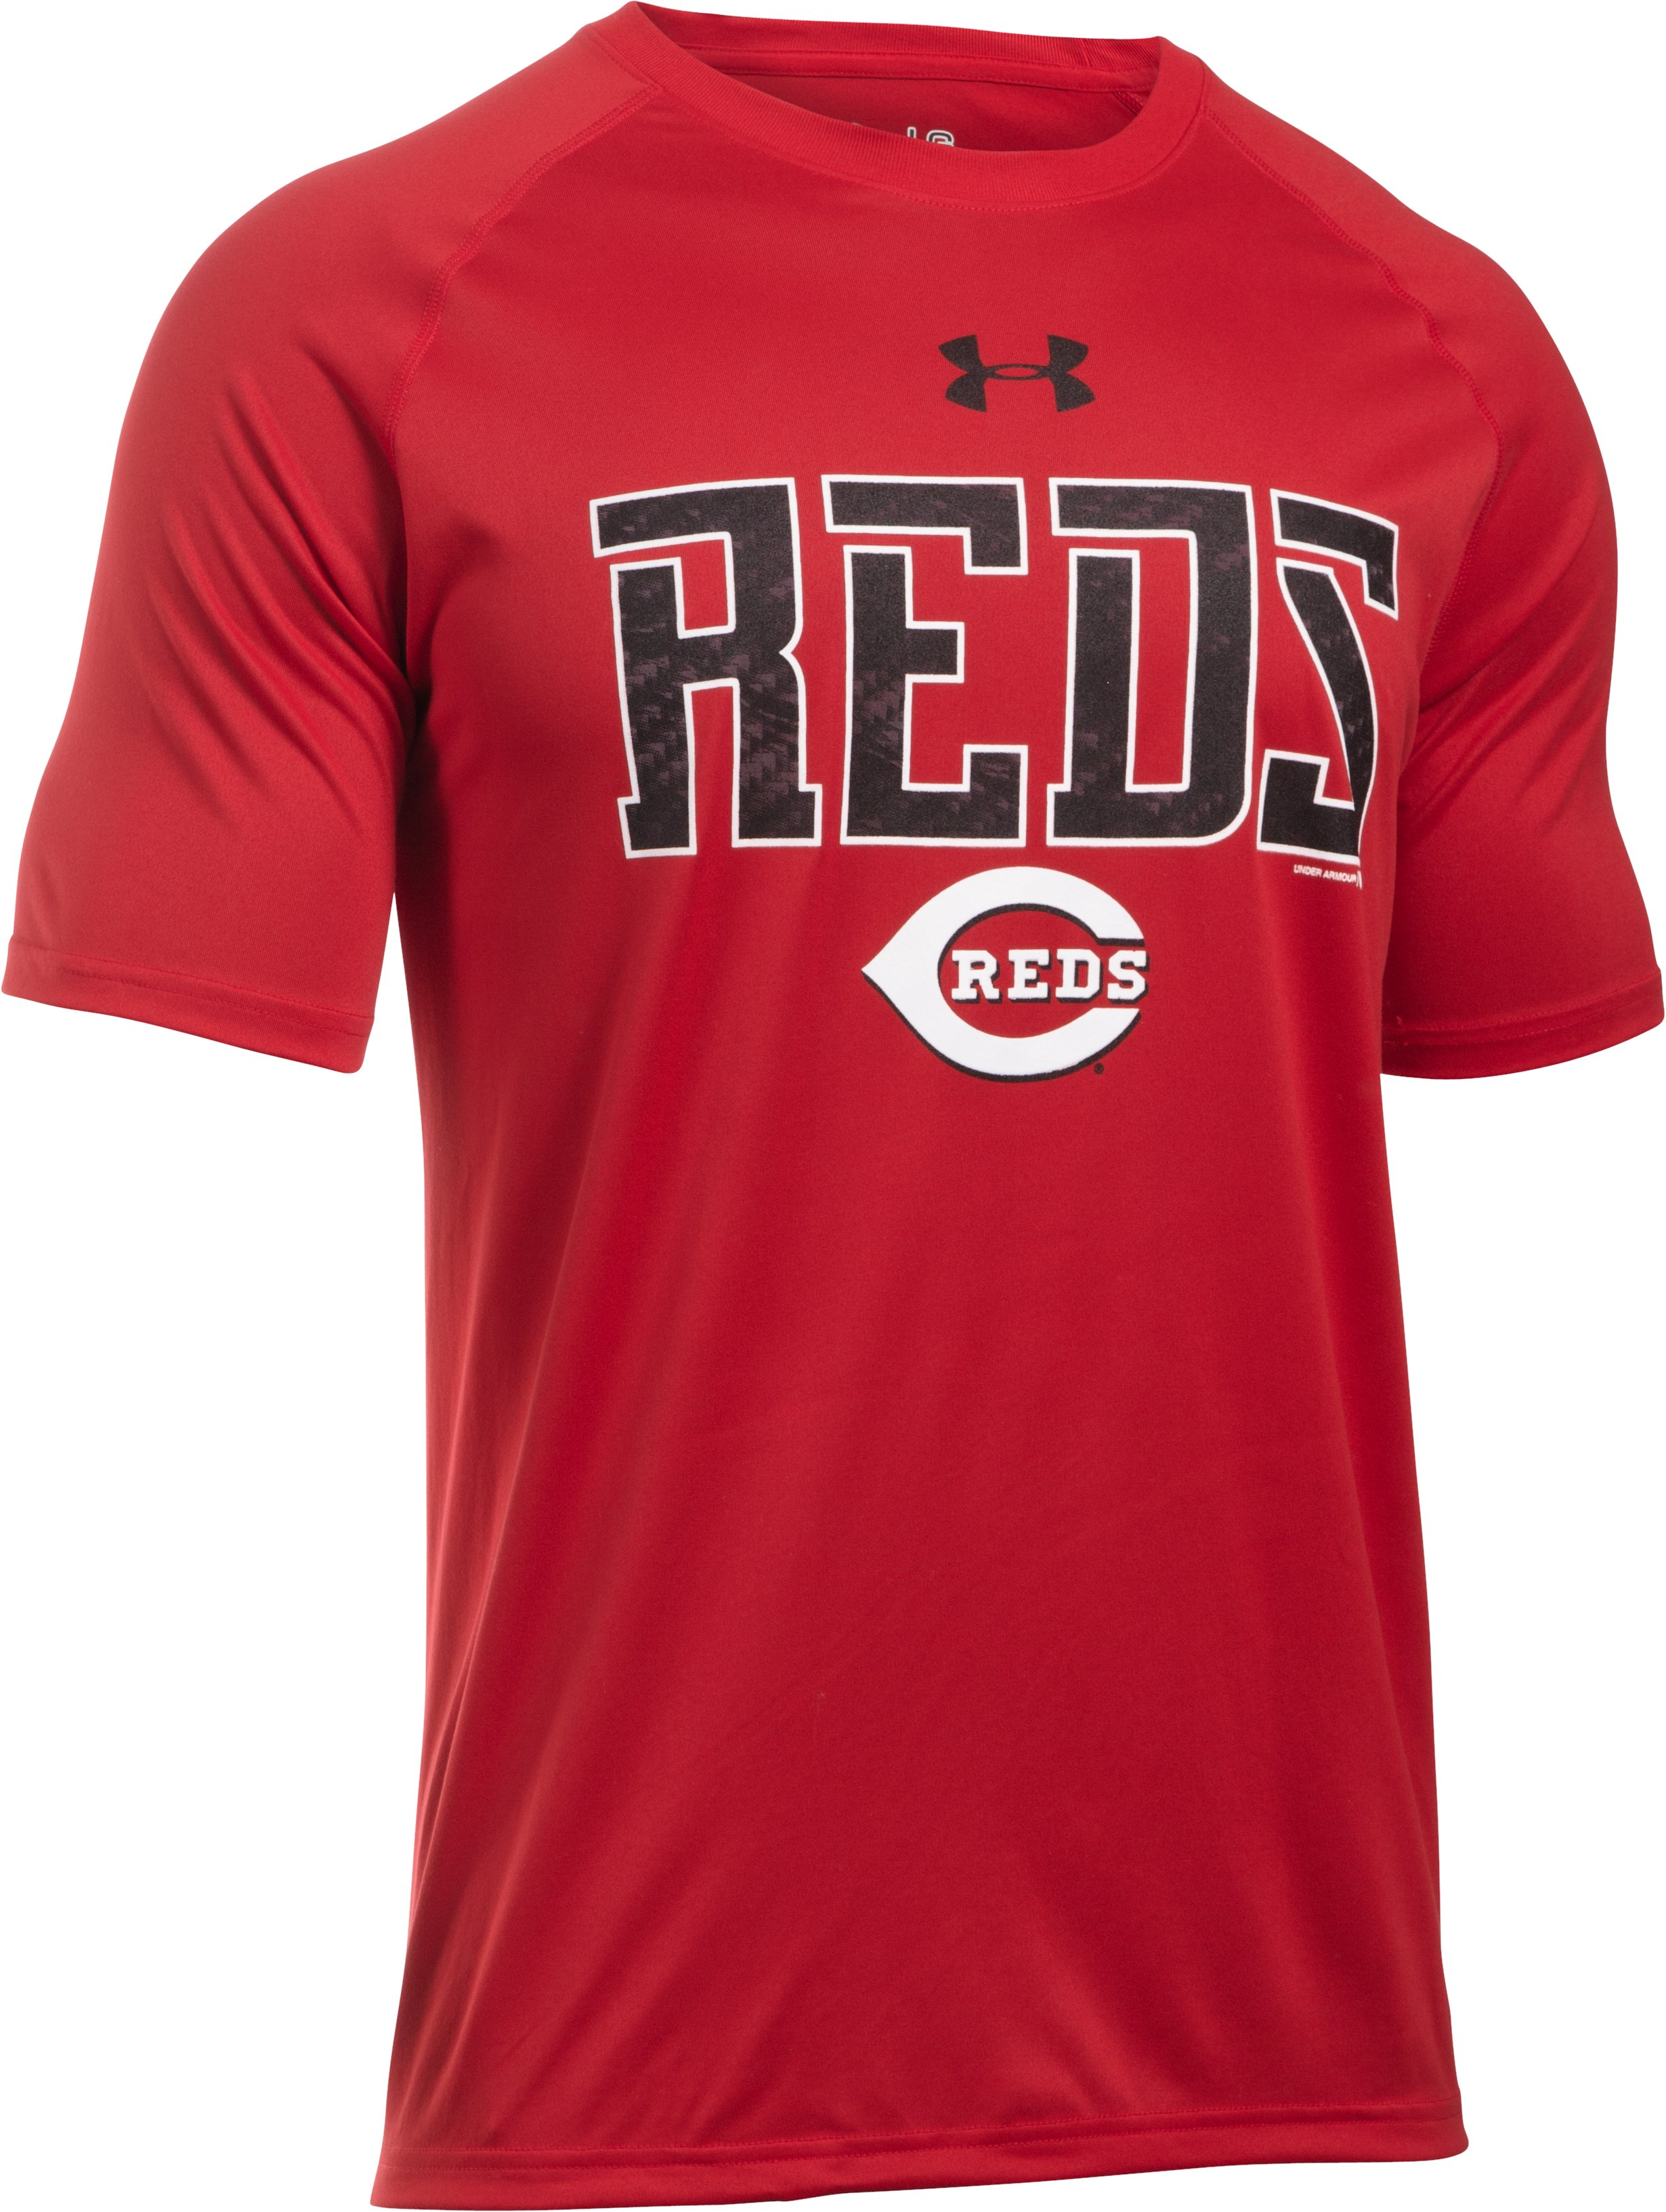 Men's Cincinnati Reds Team Tech™ T-Shirt, Red